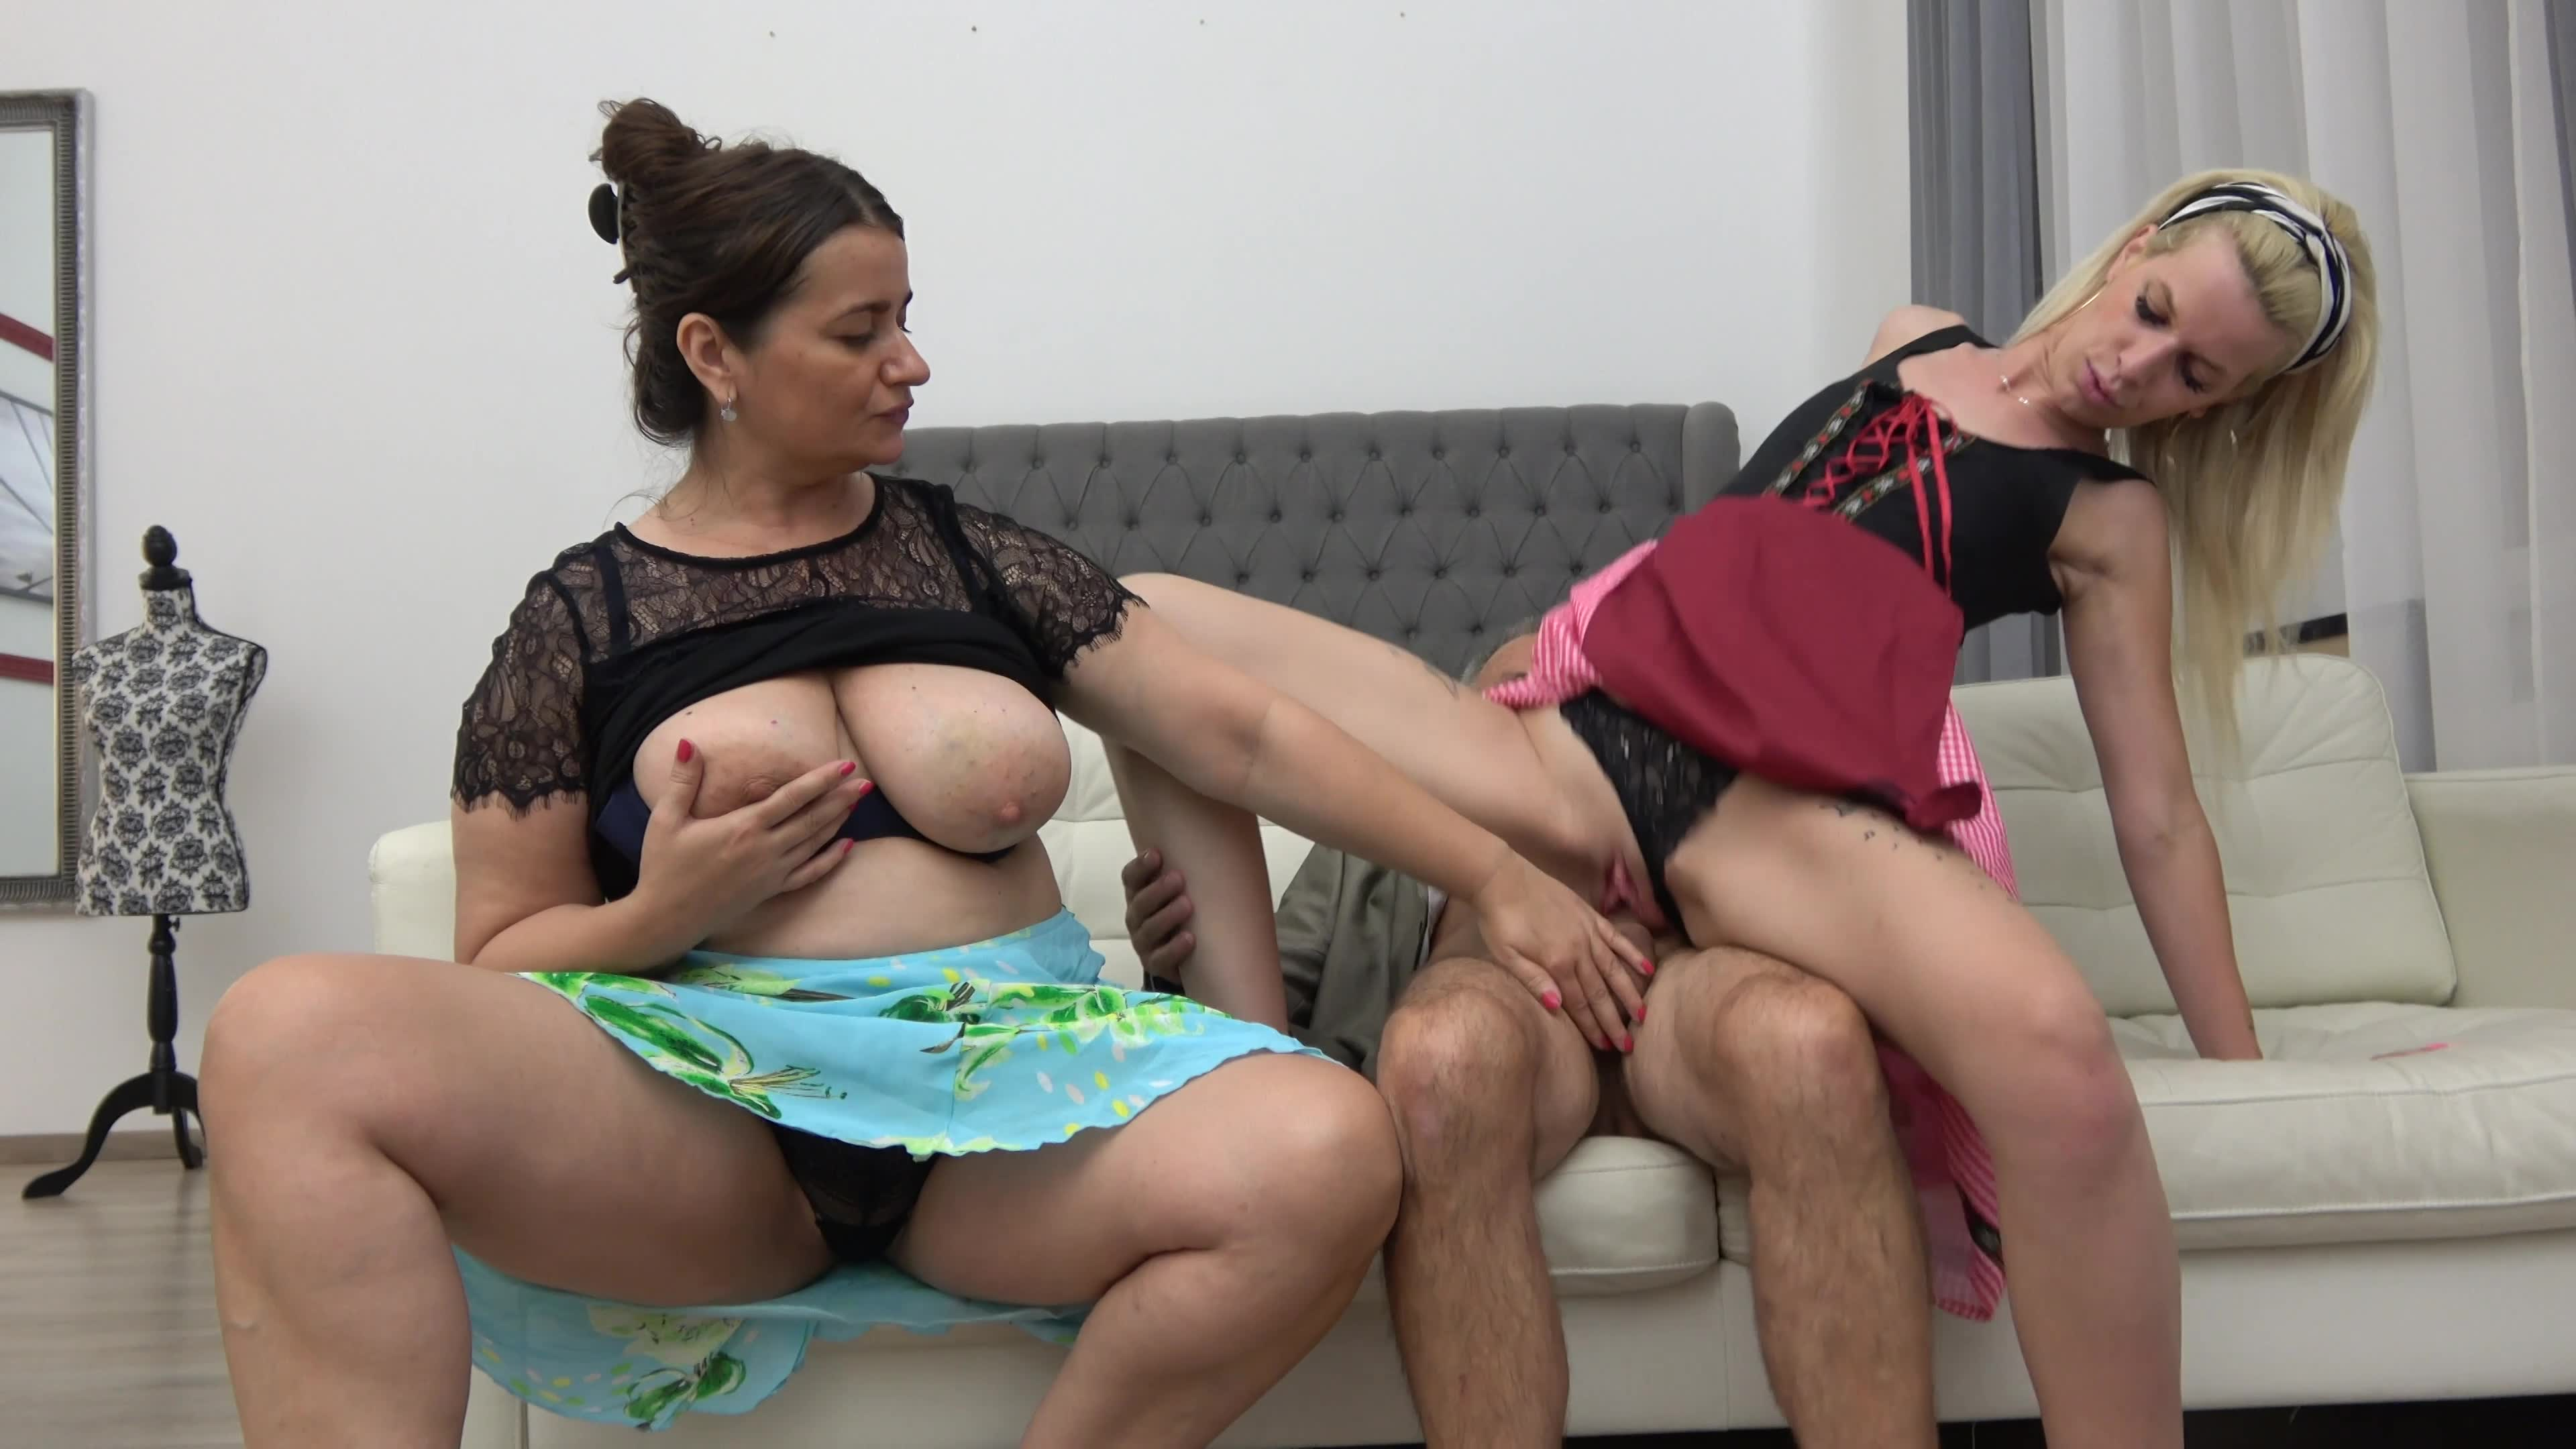 Cam girl nyxon tied up fucked taught lesson